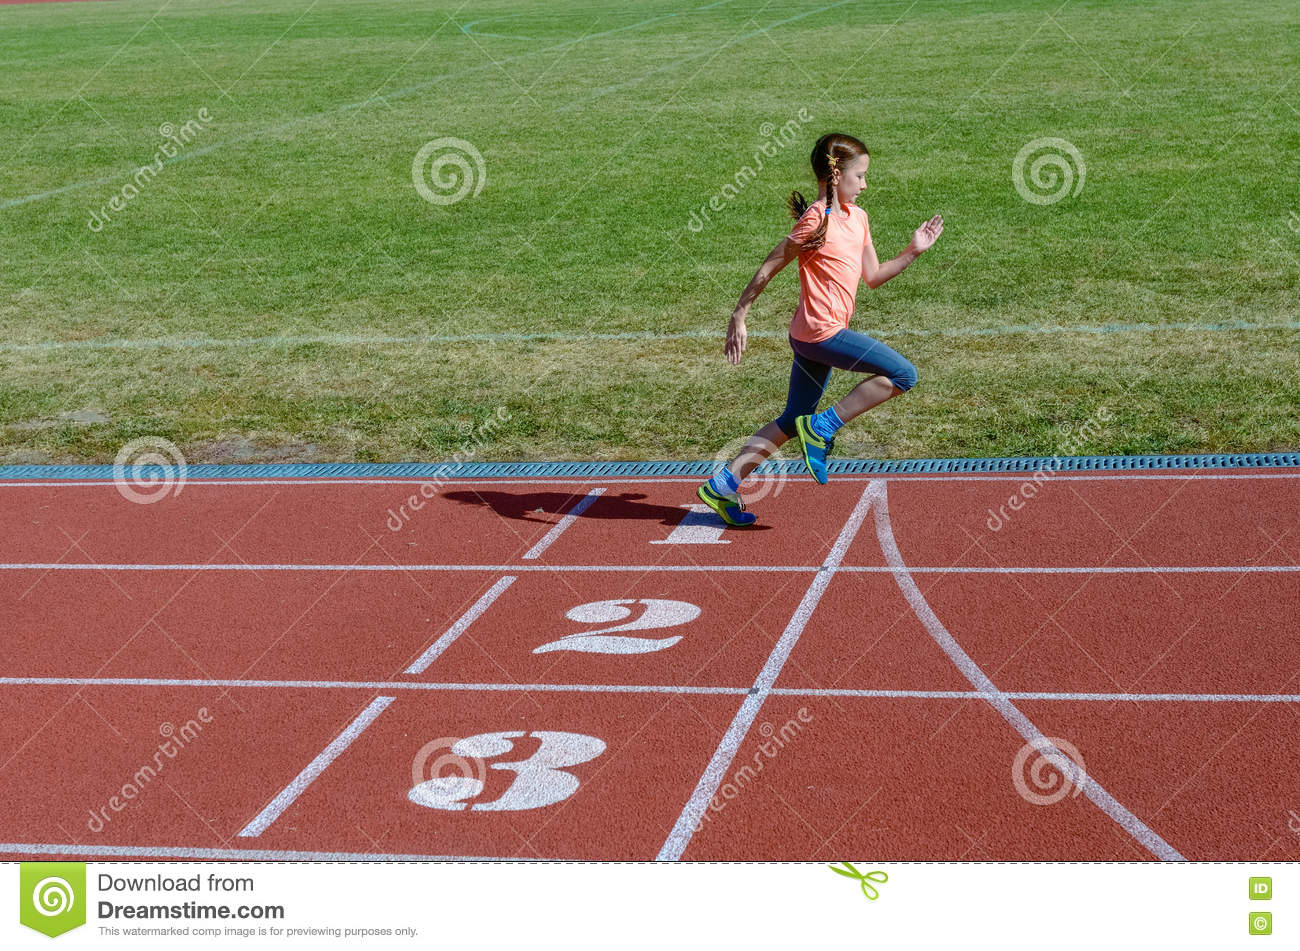 Kids sport, child running on stadium track, training and fitness